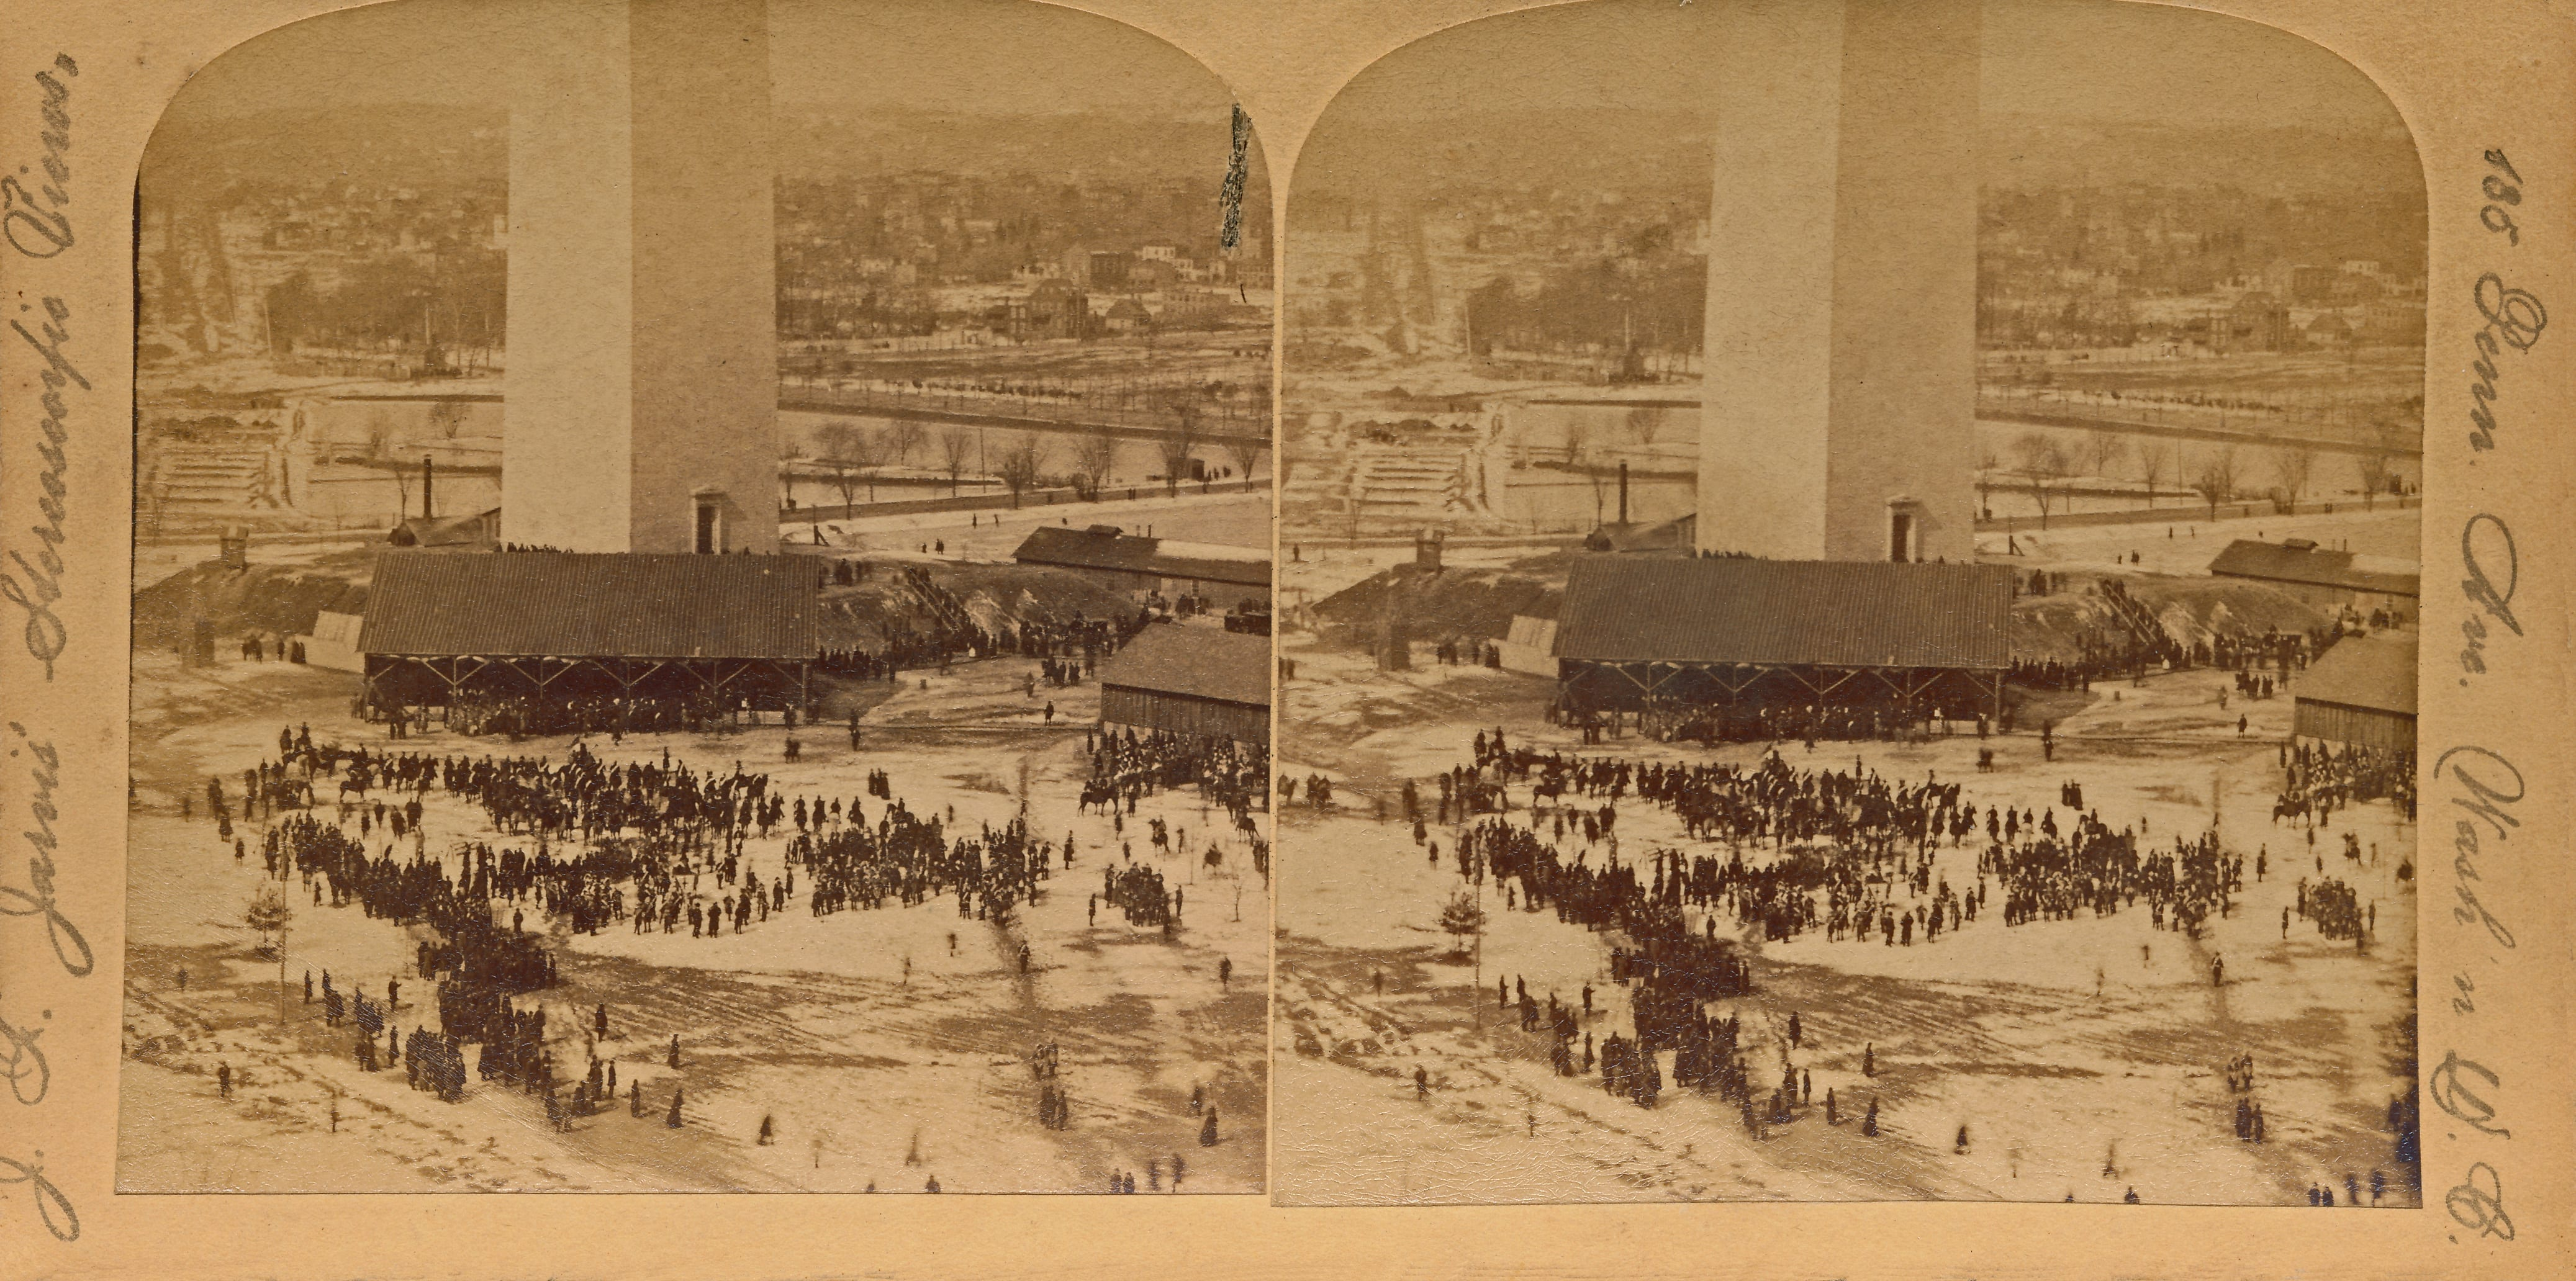 Stereoview of people congregating for the dedication of the Washington Monument on a snowy day in February 1885.